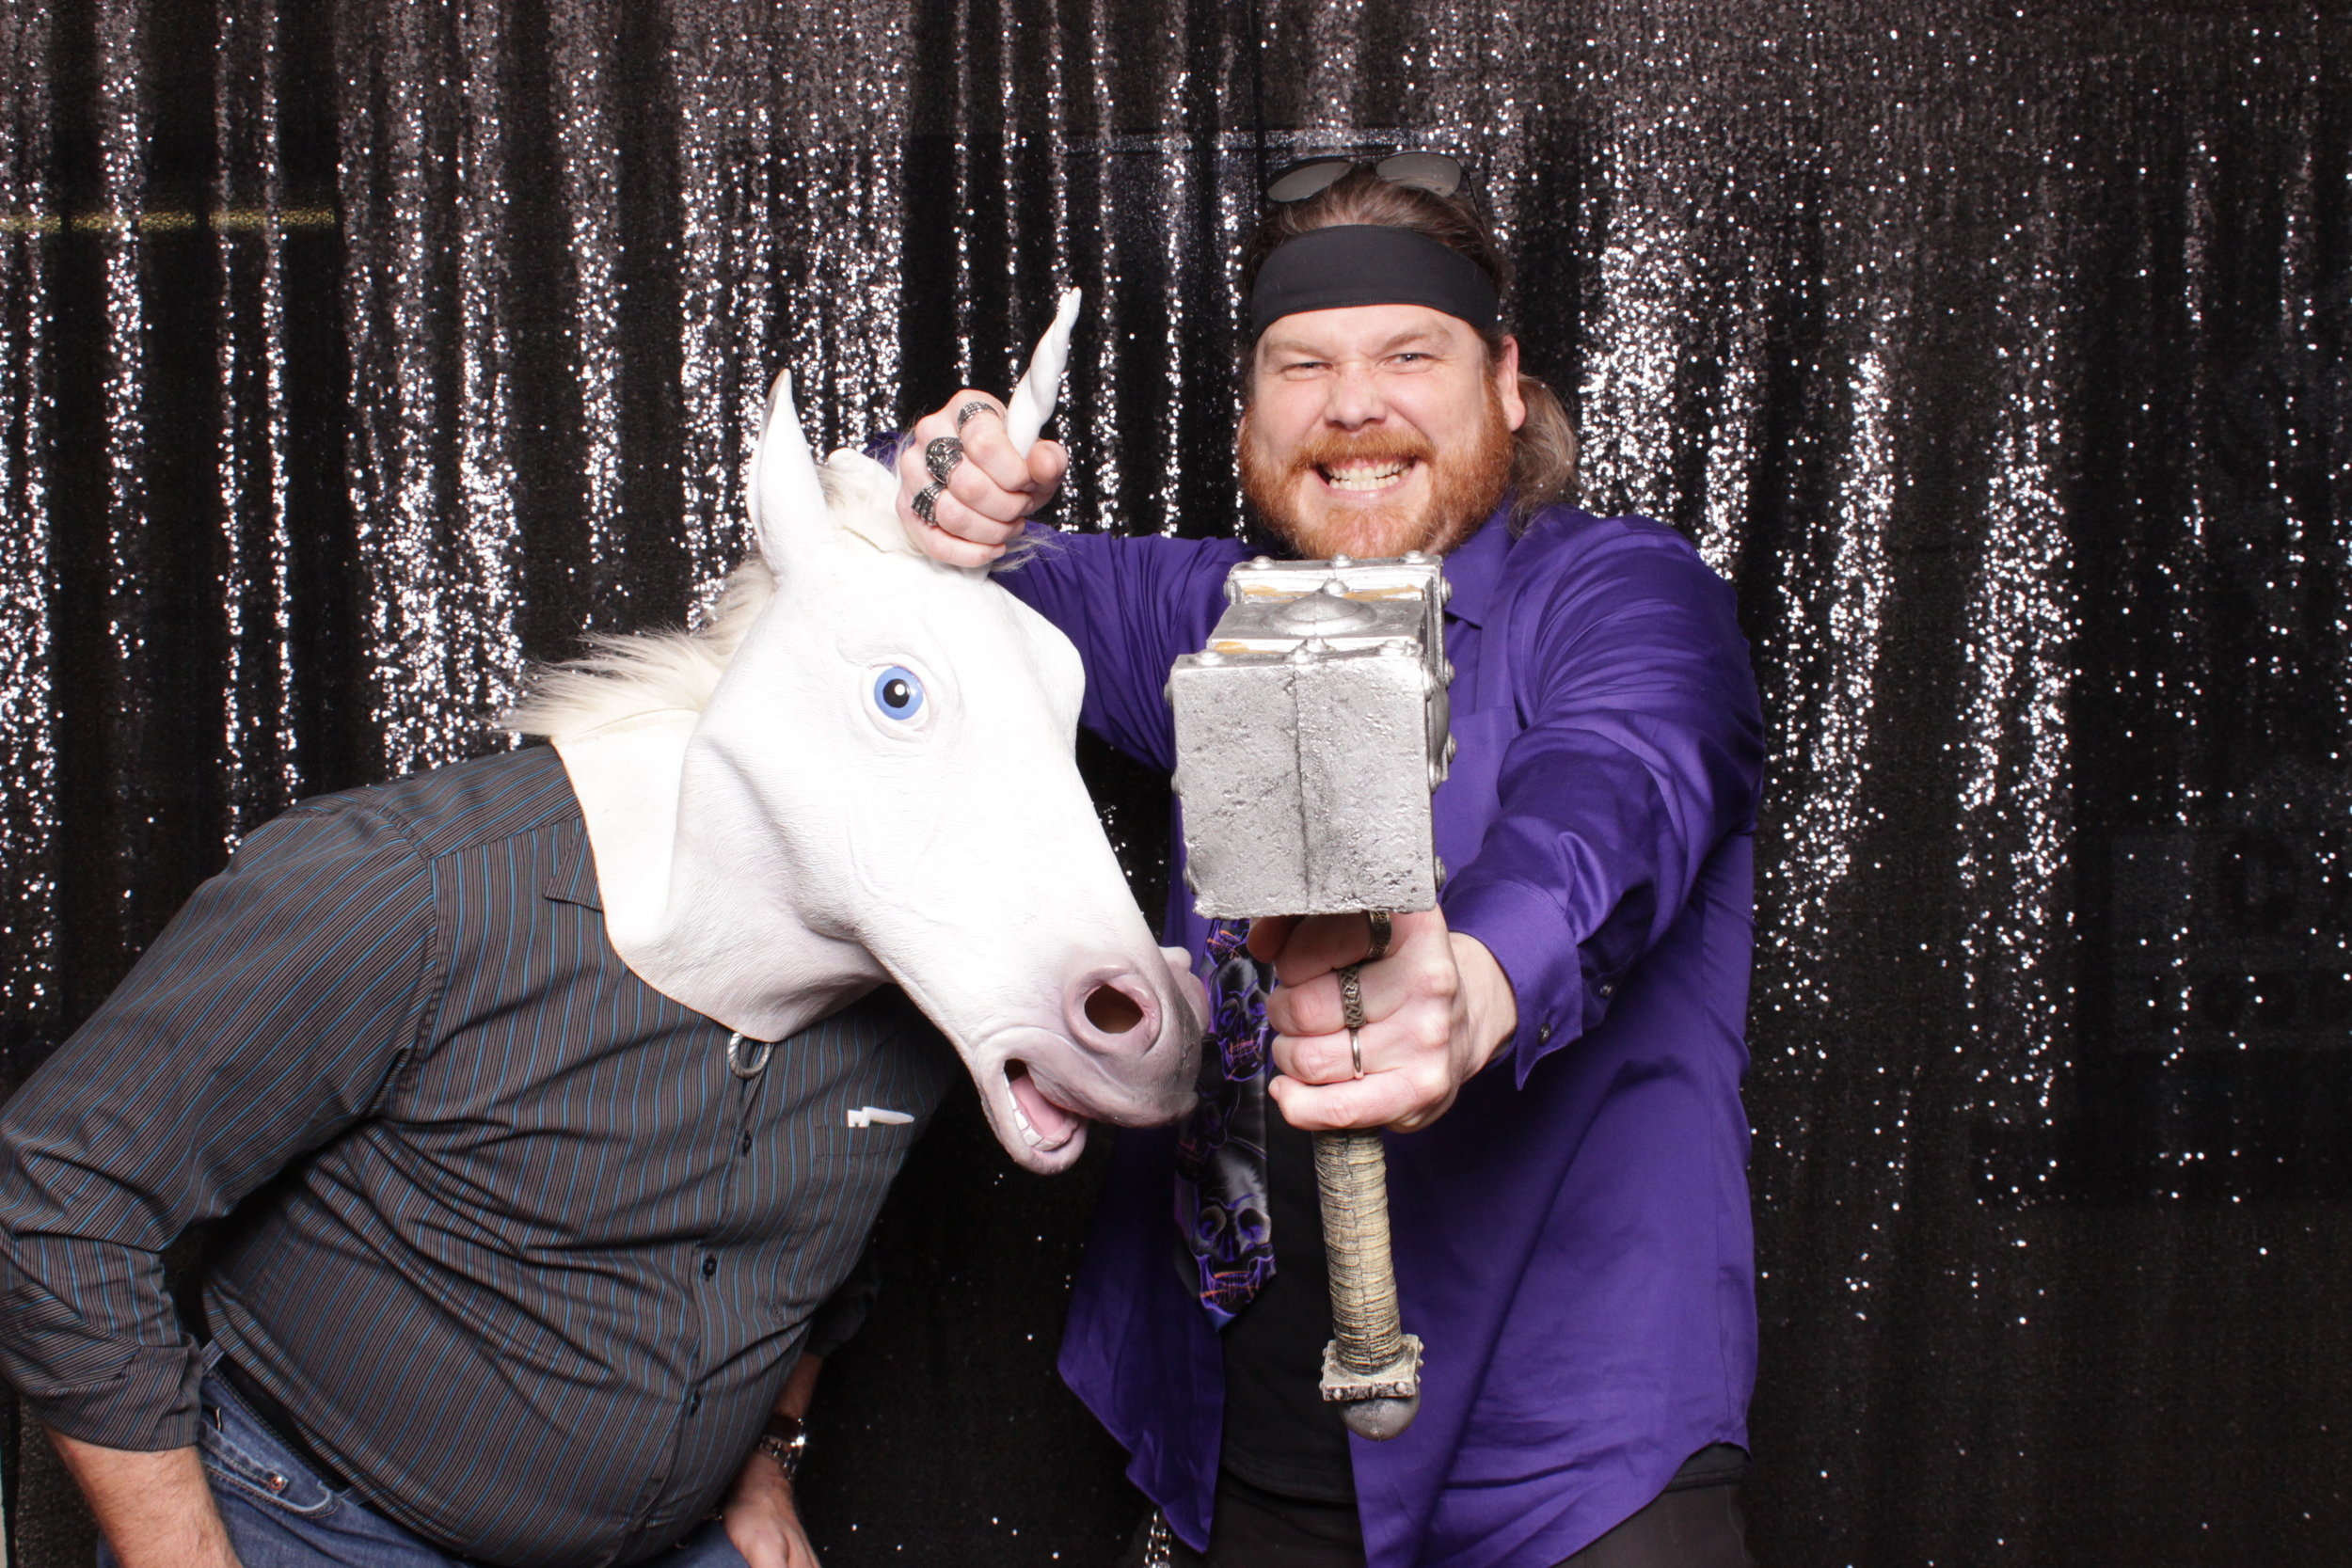 wedding-chico-trebooth-photo-booth-rental.jpg